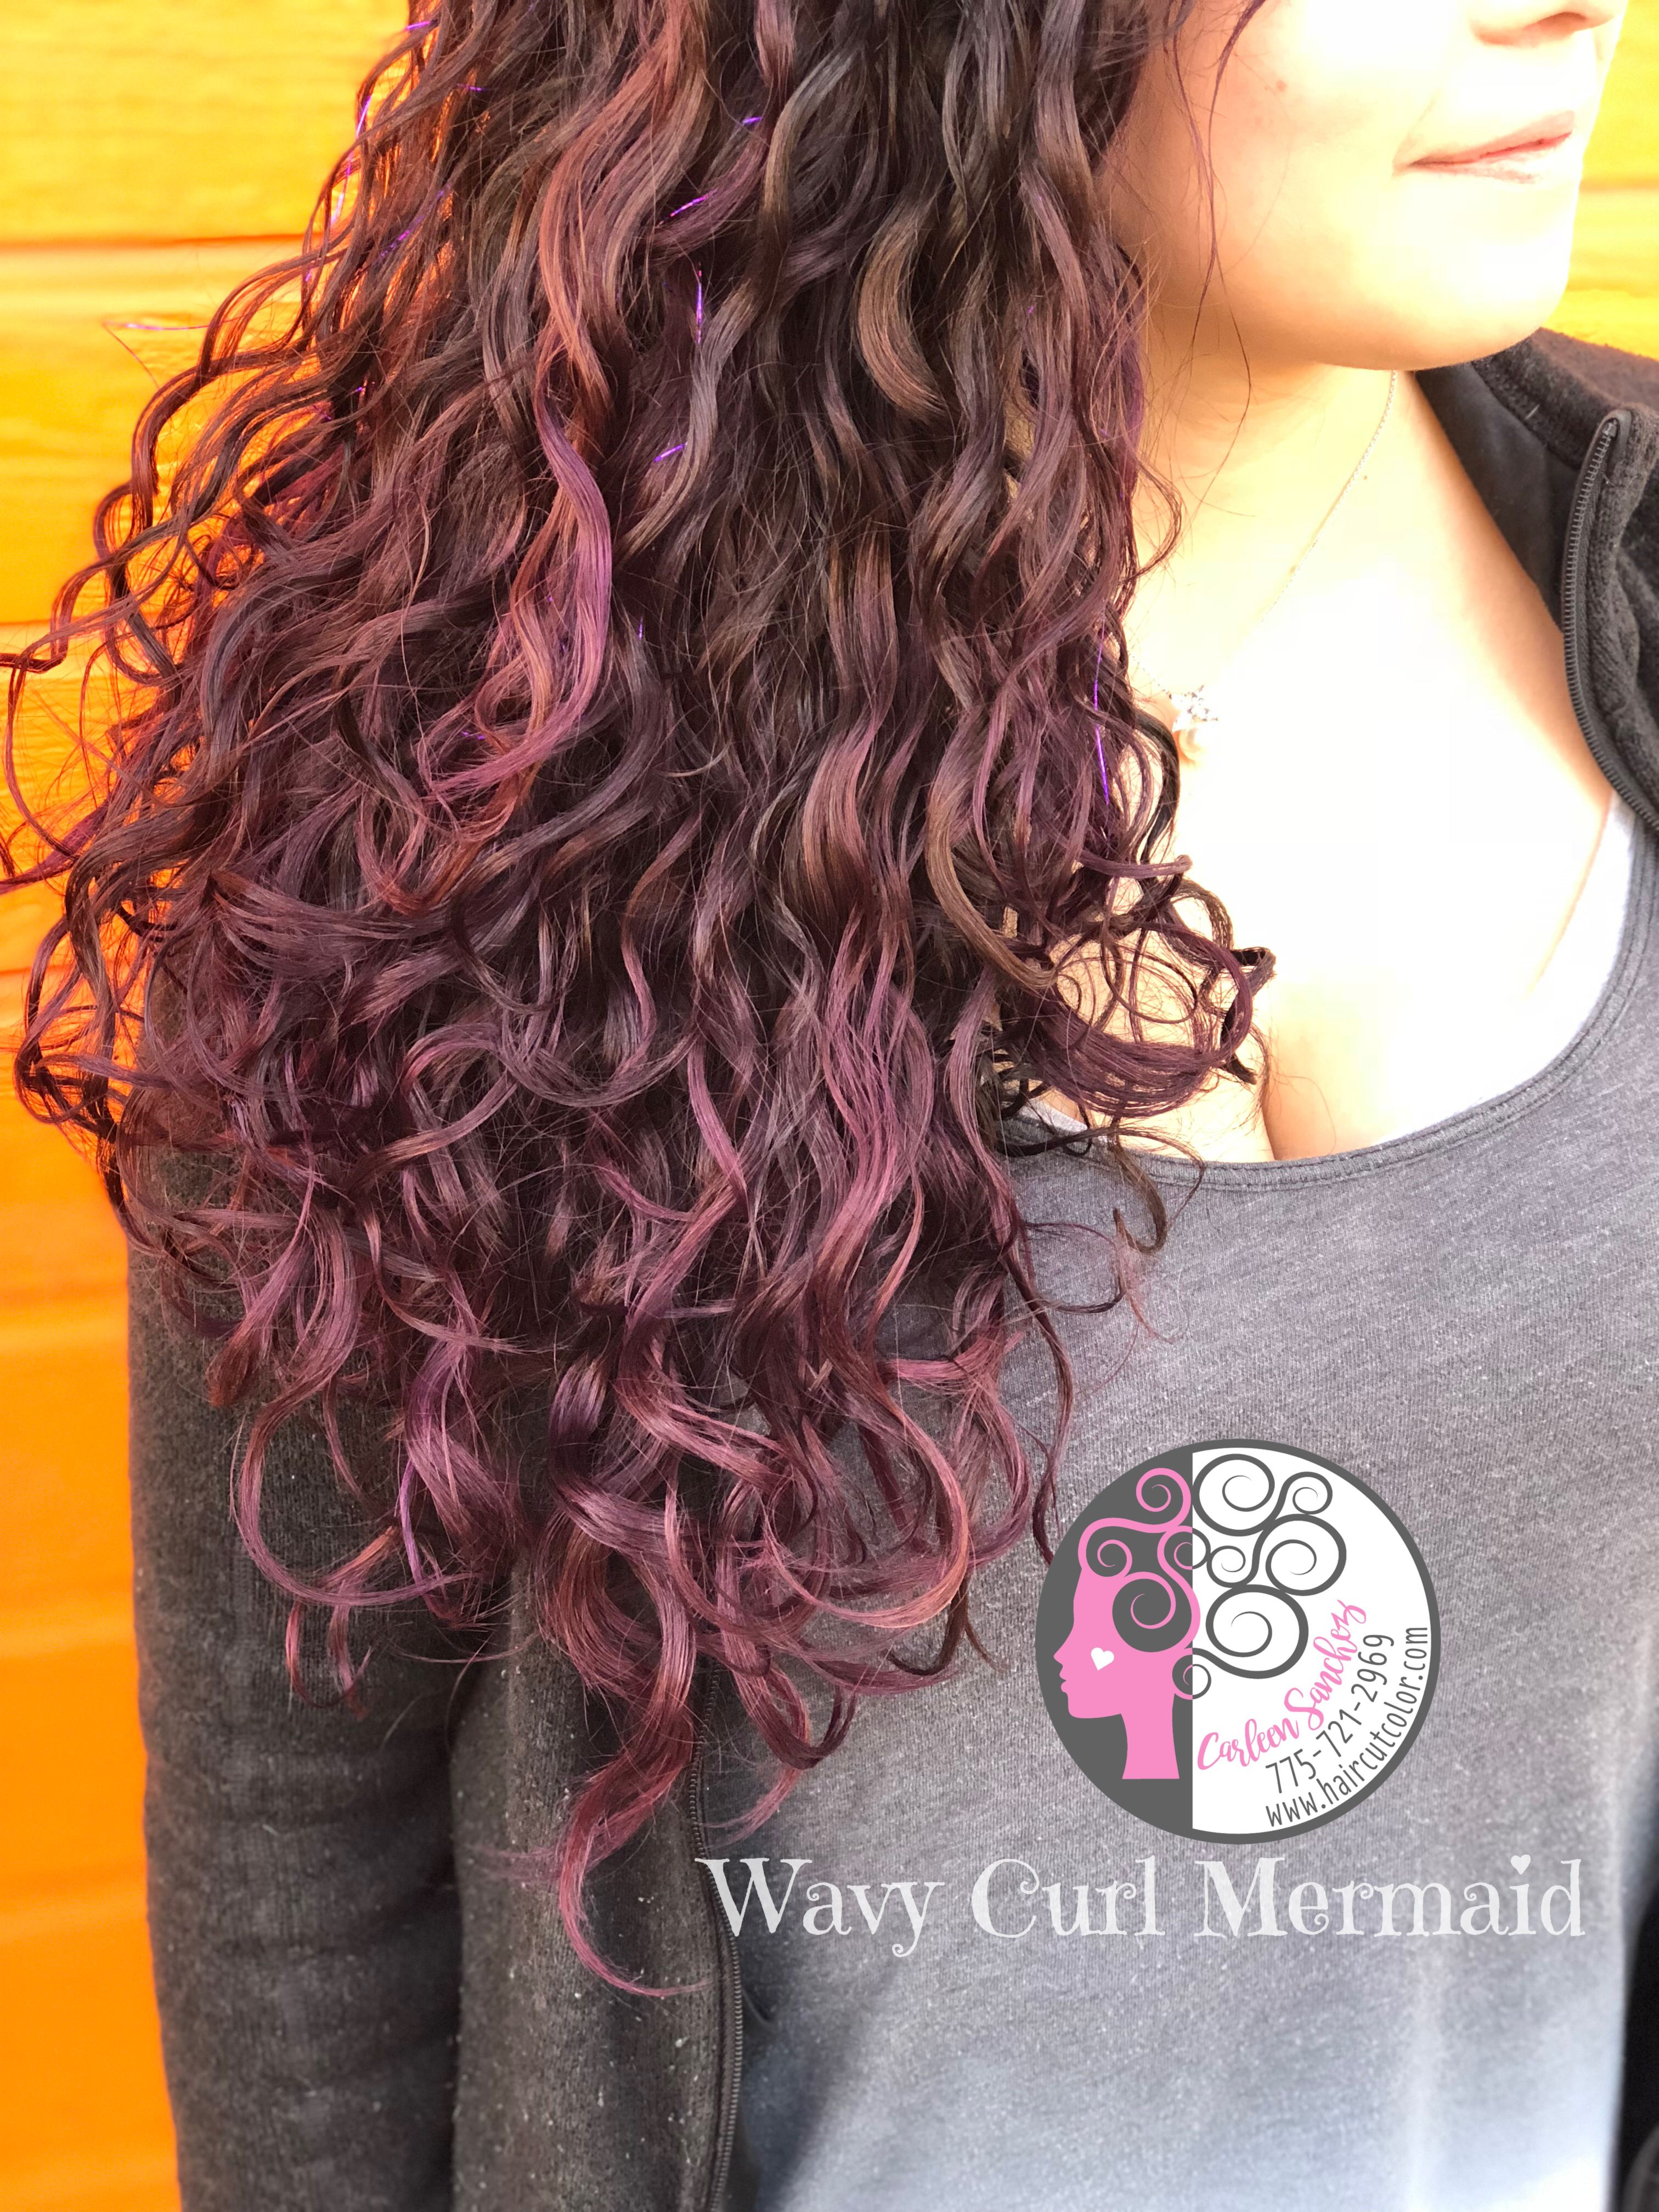 Temporary Wild Orchid Purple Naturally Curly Mermaid Hair By Carleen Sanchez Nevada S Curly Hair And Col Haircuts For Curly Hair Curly Hair Styles Mermaid Hair